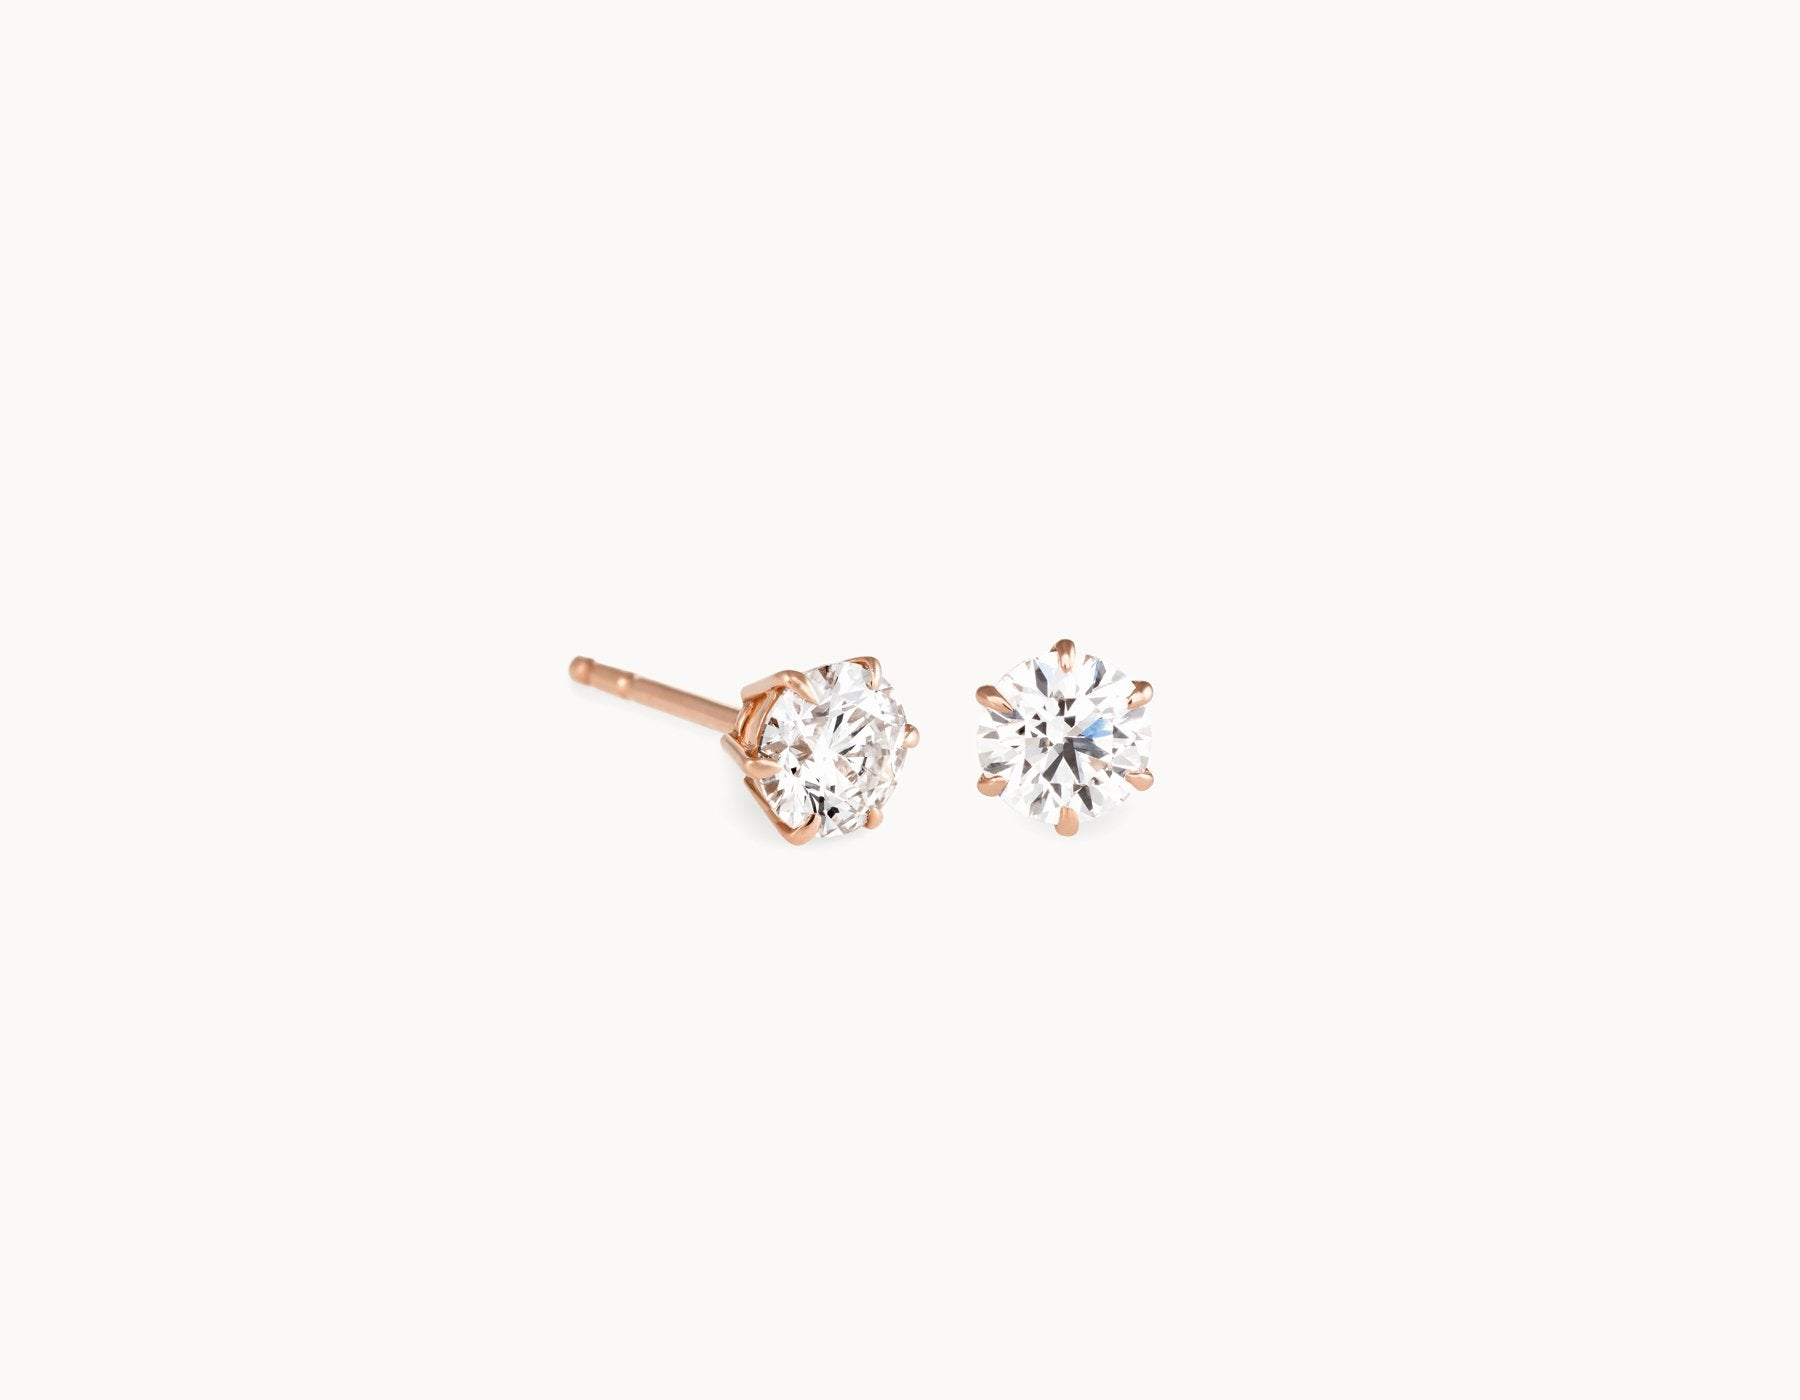 set in white and heart diamond gold earrings shape pin